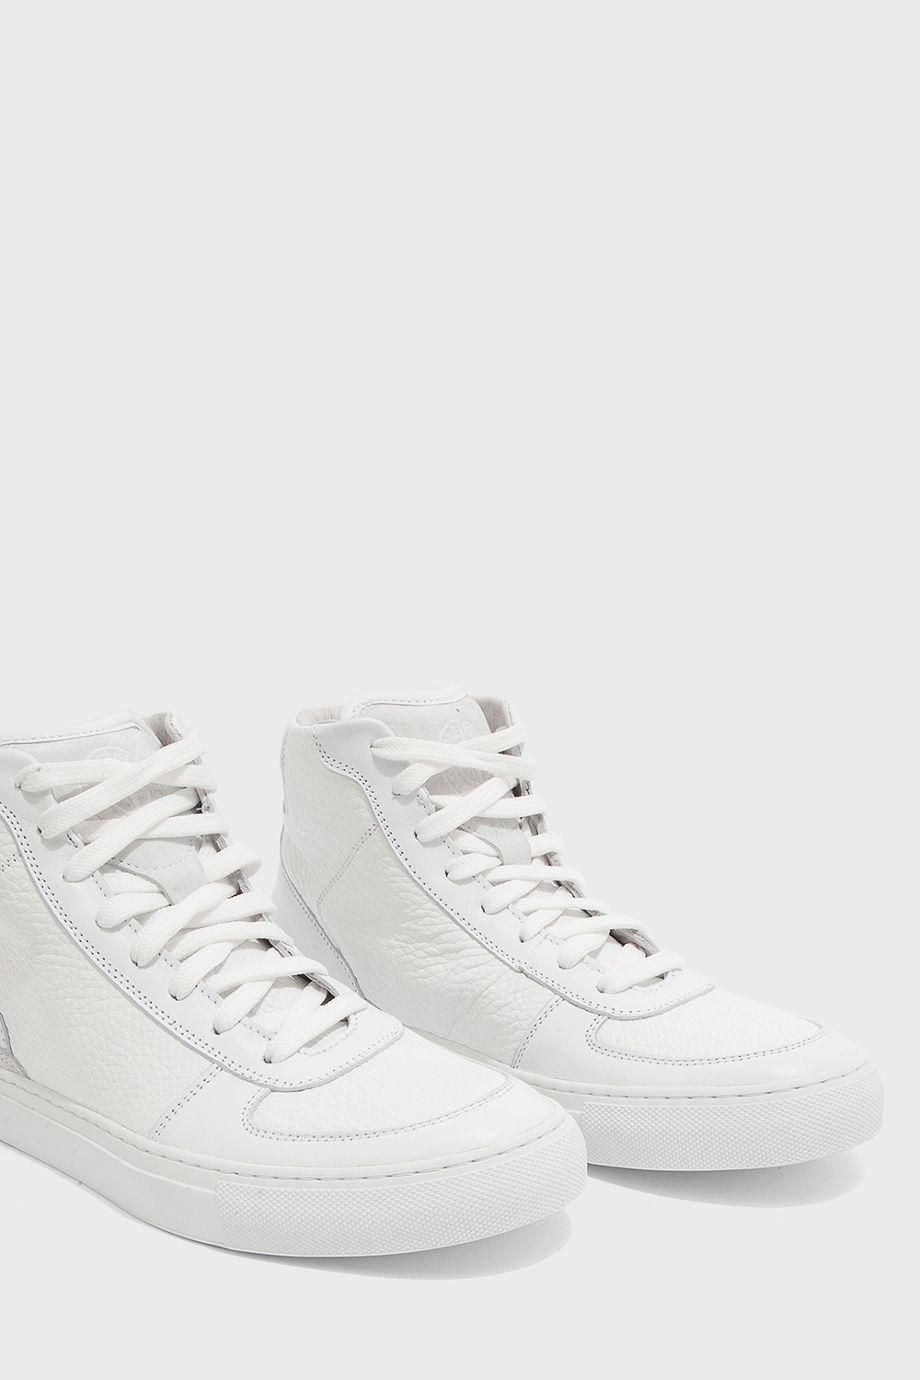 STONE ISLAND High Top Leather Trainers